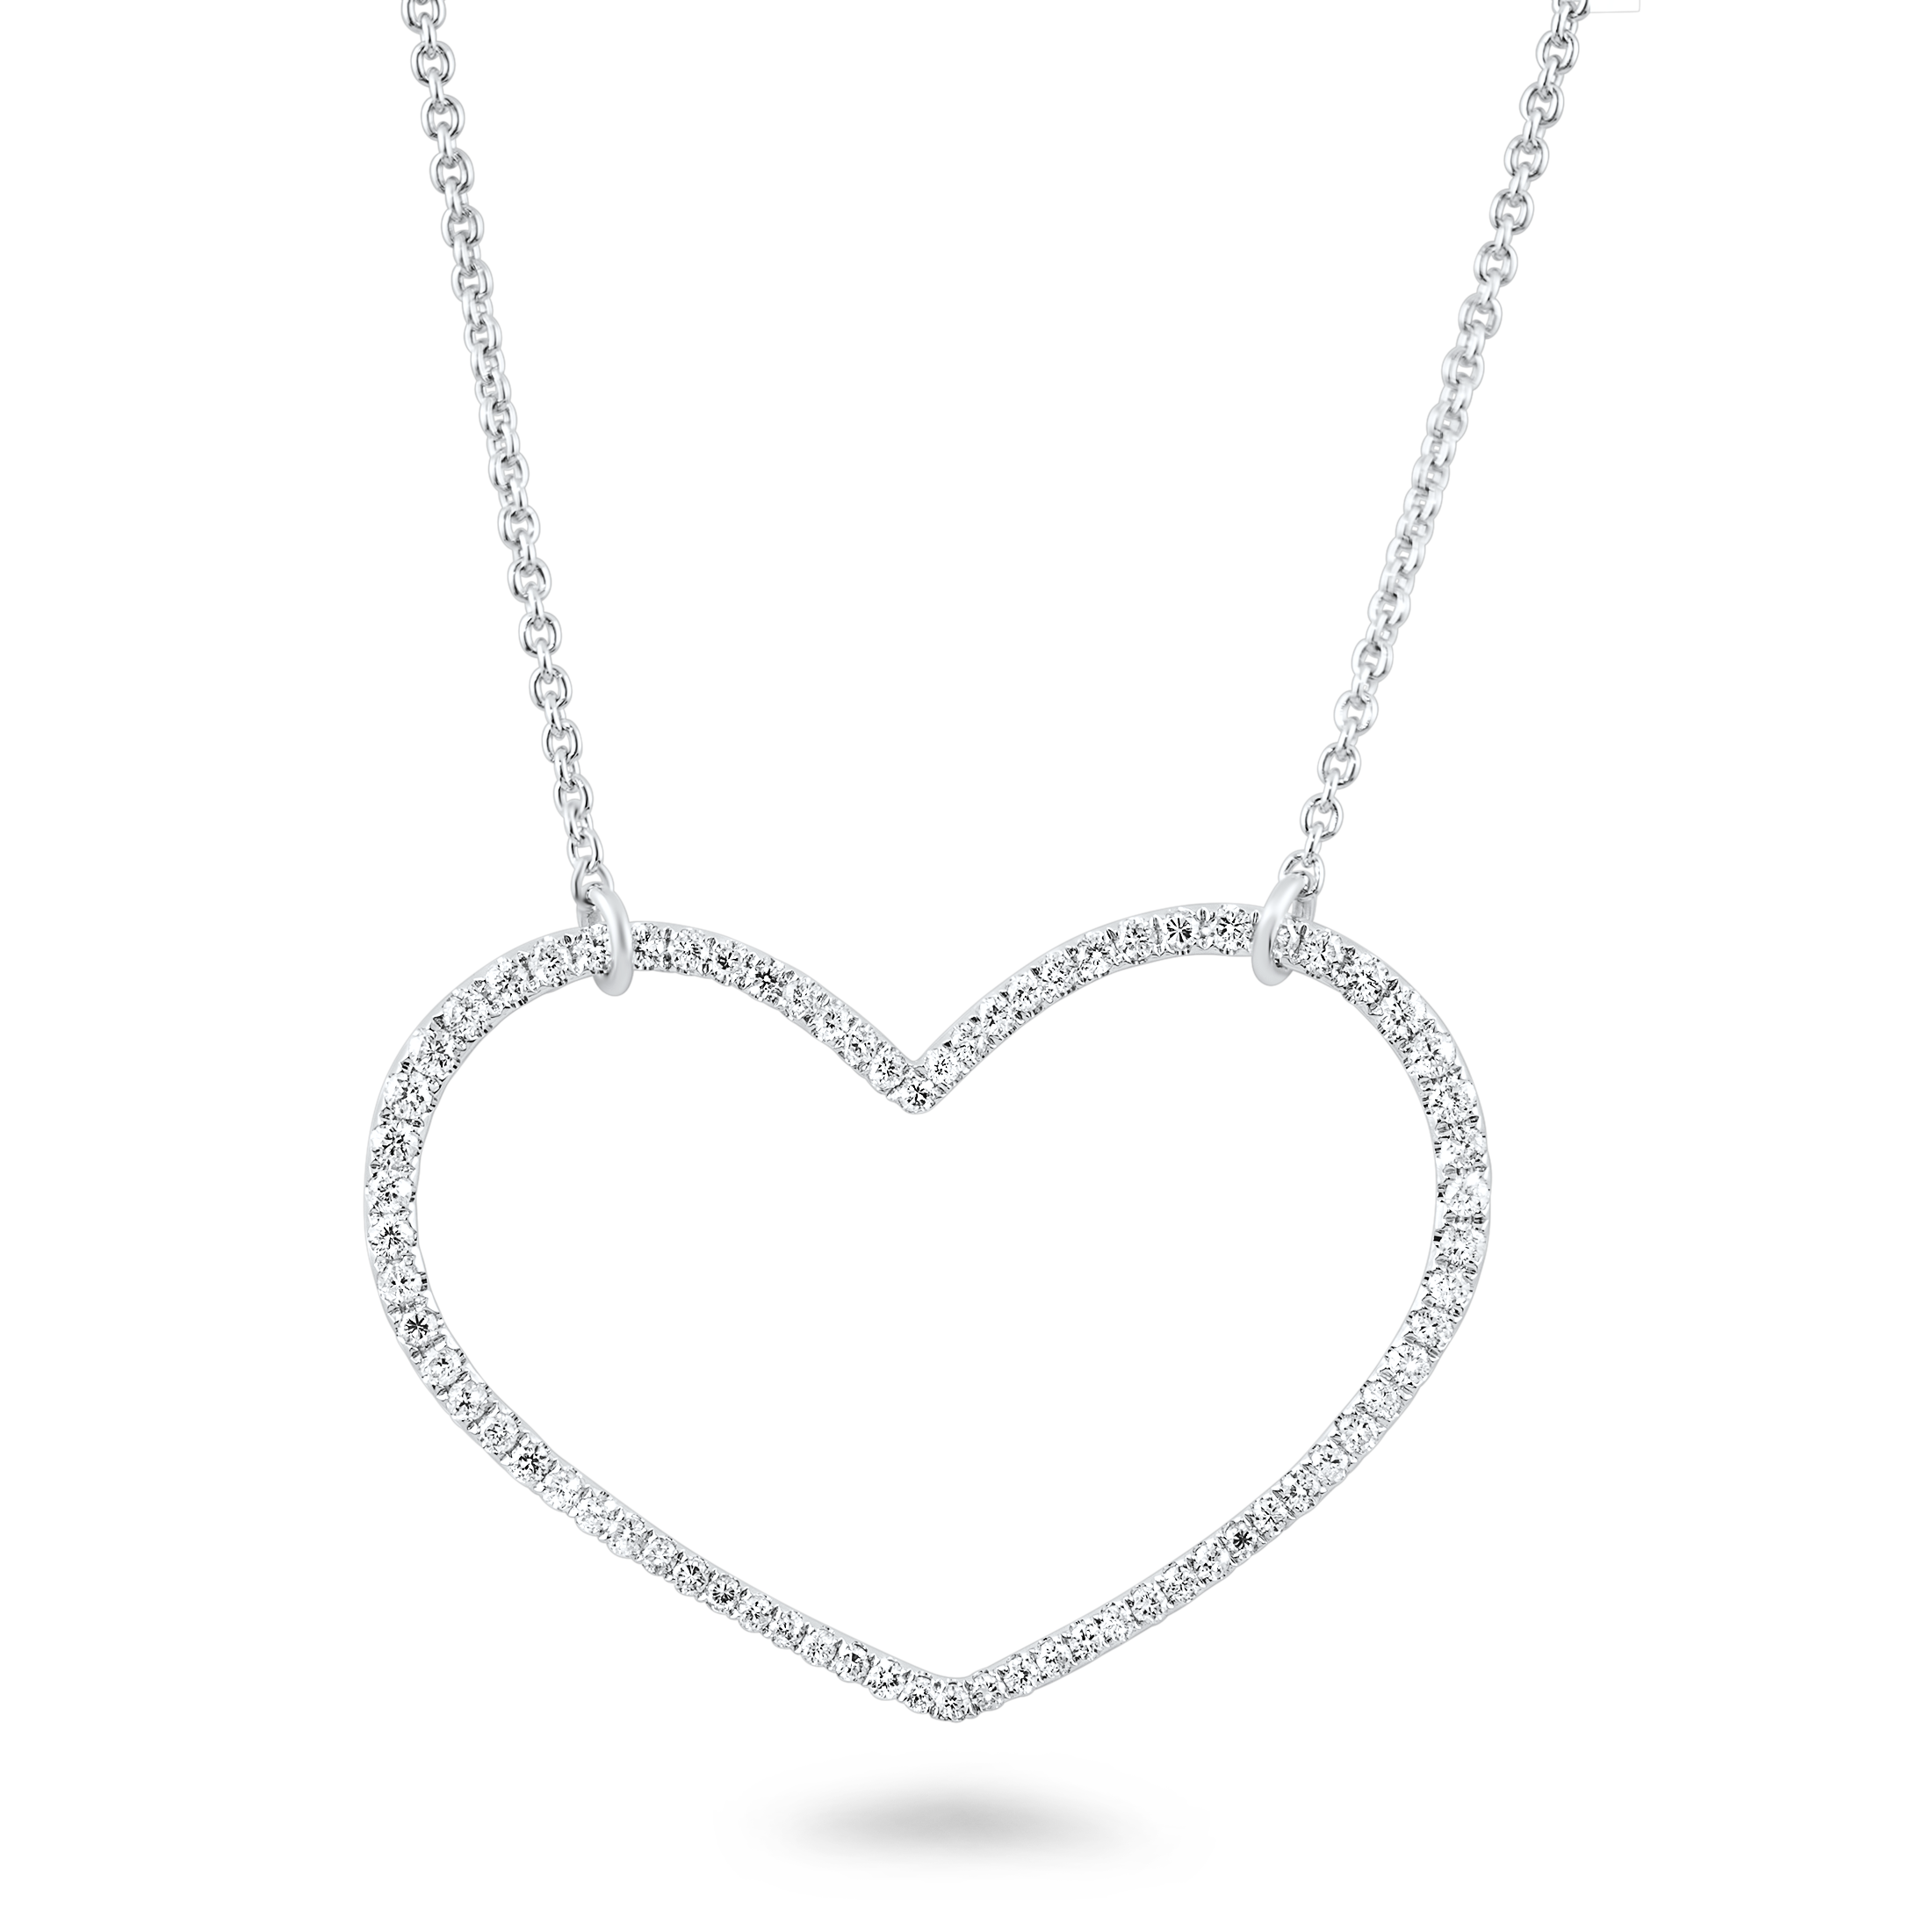 2200x2200 Beautiful Heart Shaped Diamond Necklace Diamondland